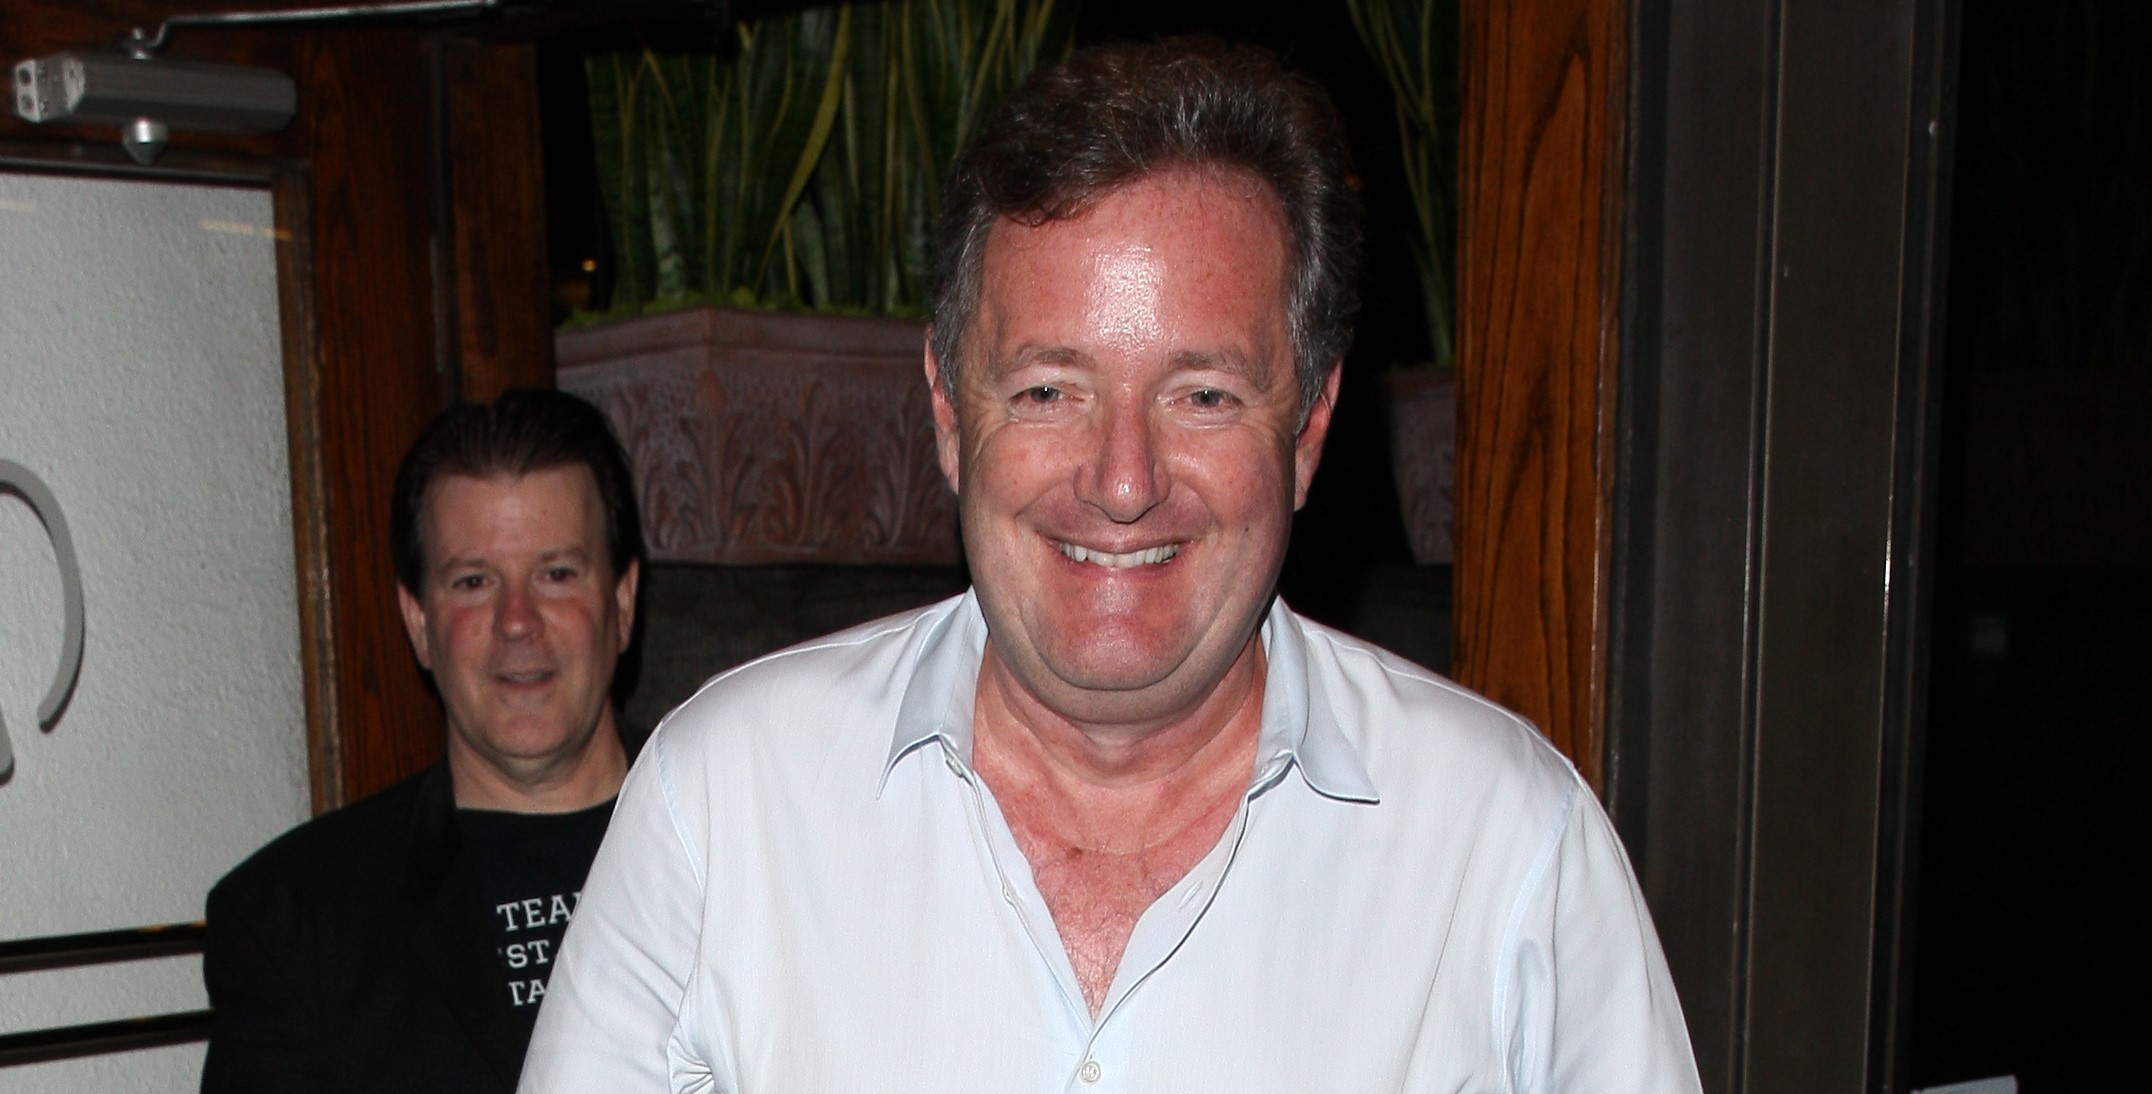 Piers Morgan jokes Sharon Osbourne is more dangerous than a serial killer